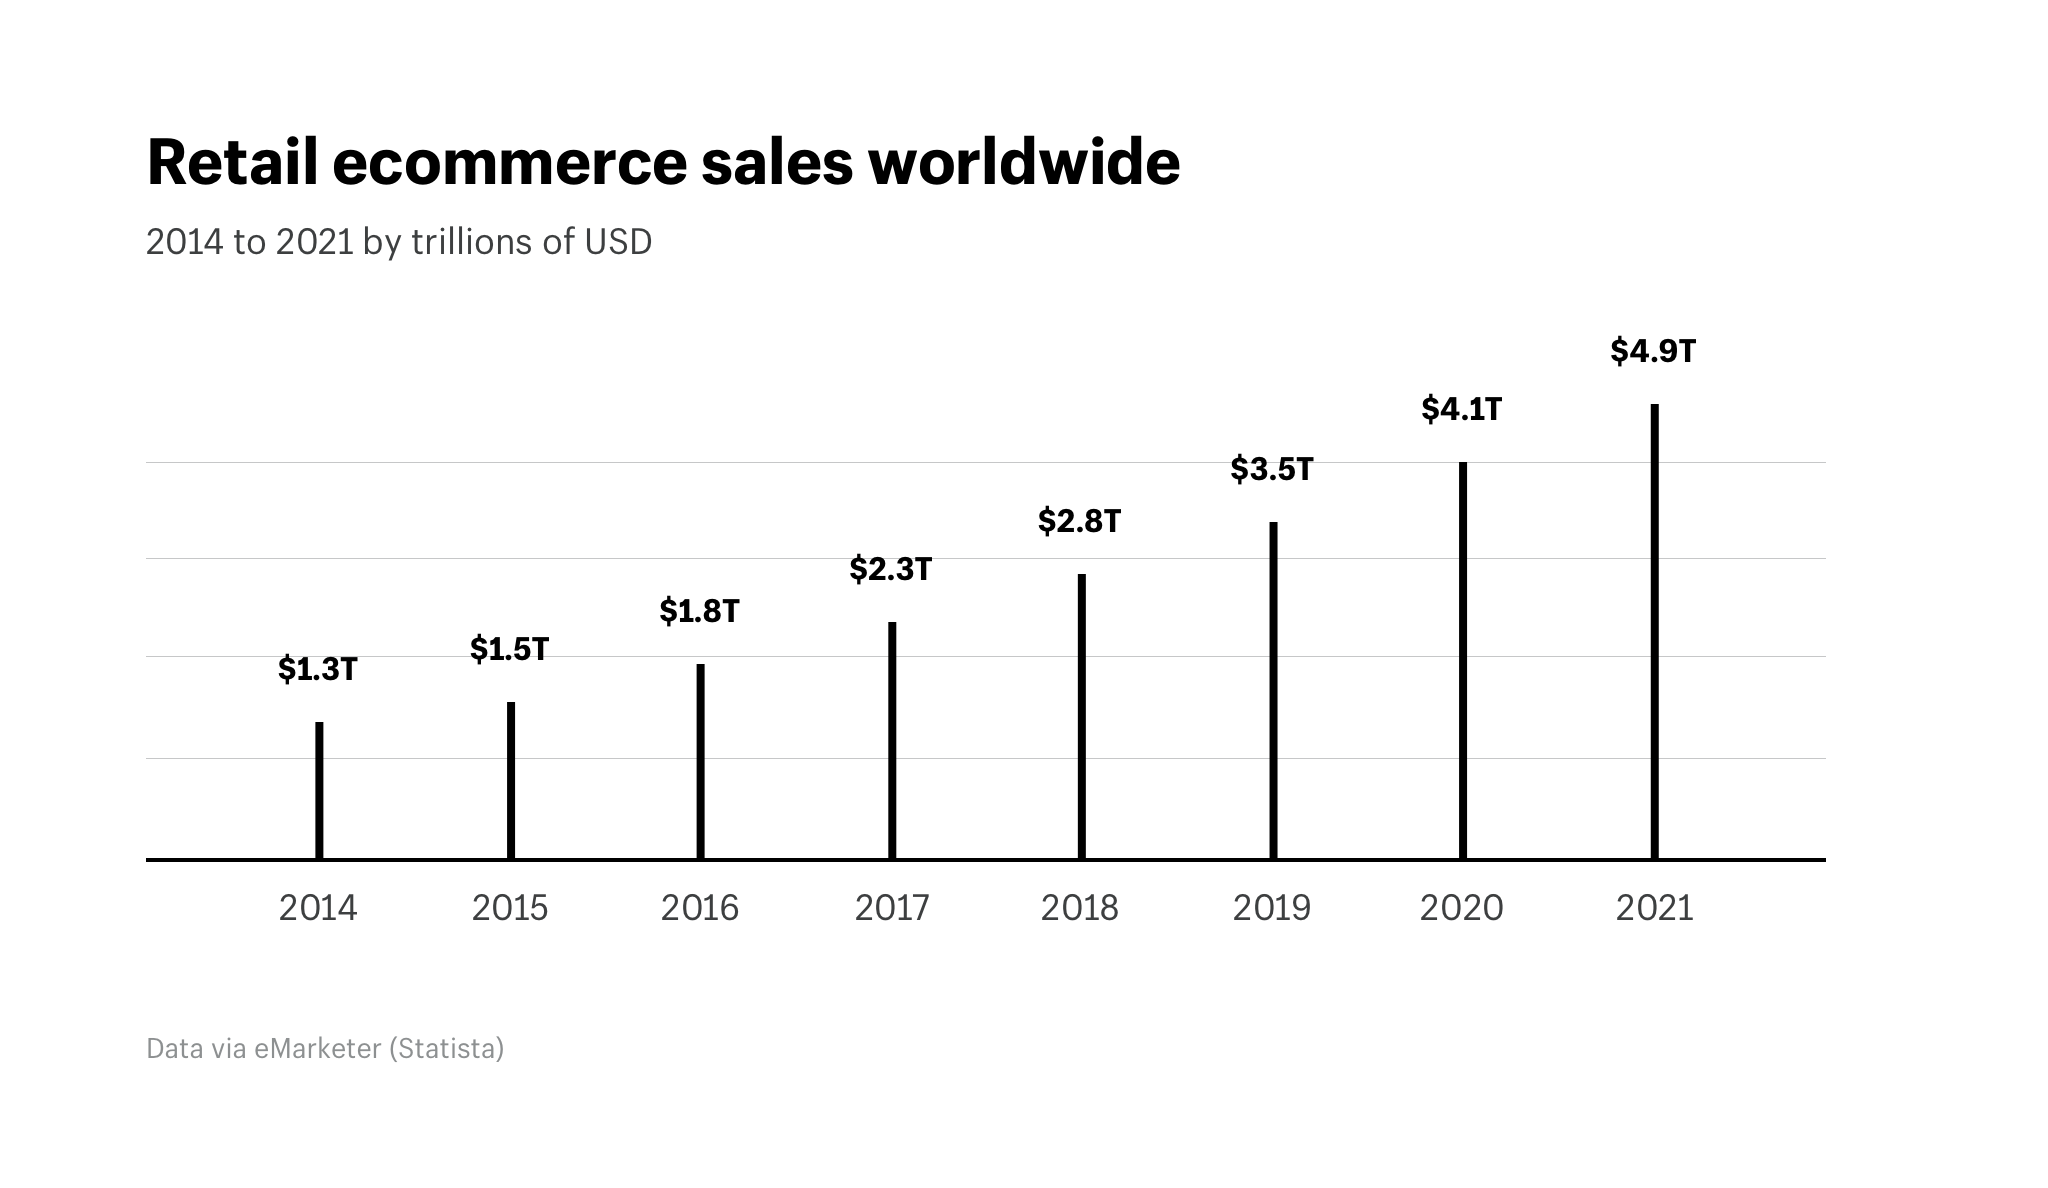 Global ecommerce market size  Retail ecommerce sales worldwide 0d308c23d3cc4